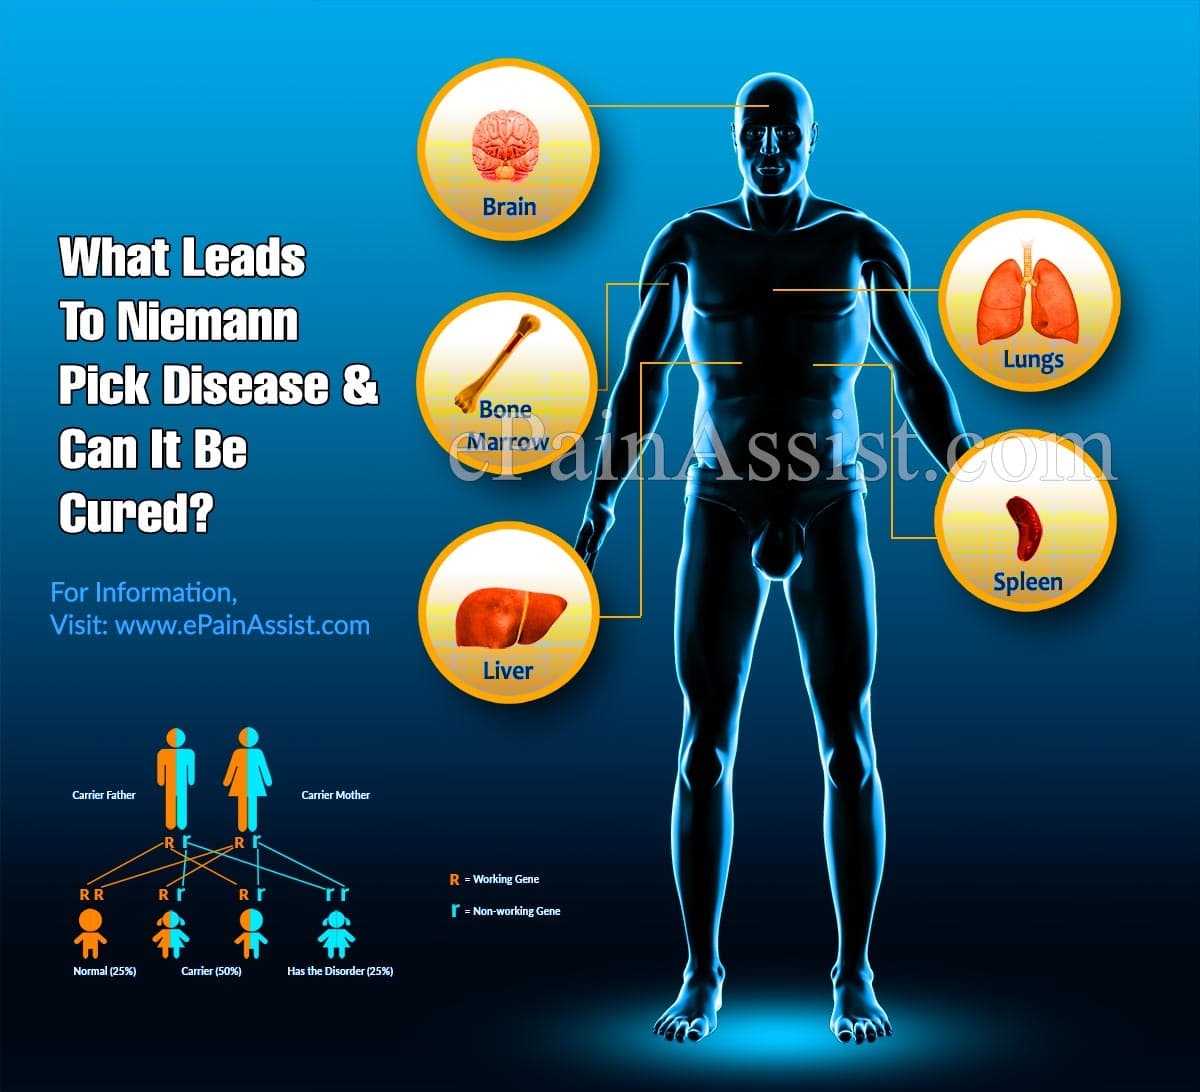 What Leads To Niemann Pick Disease & Can It Be Cured?